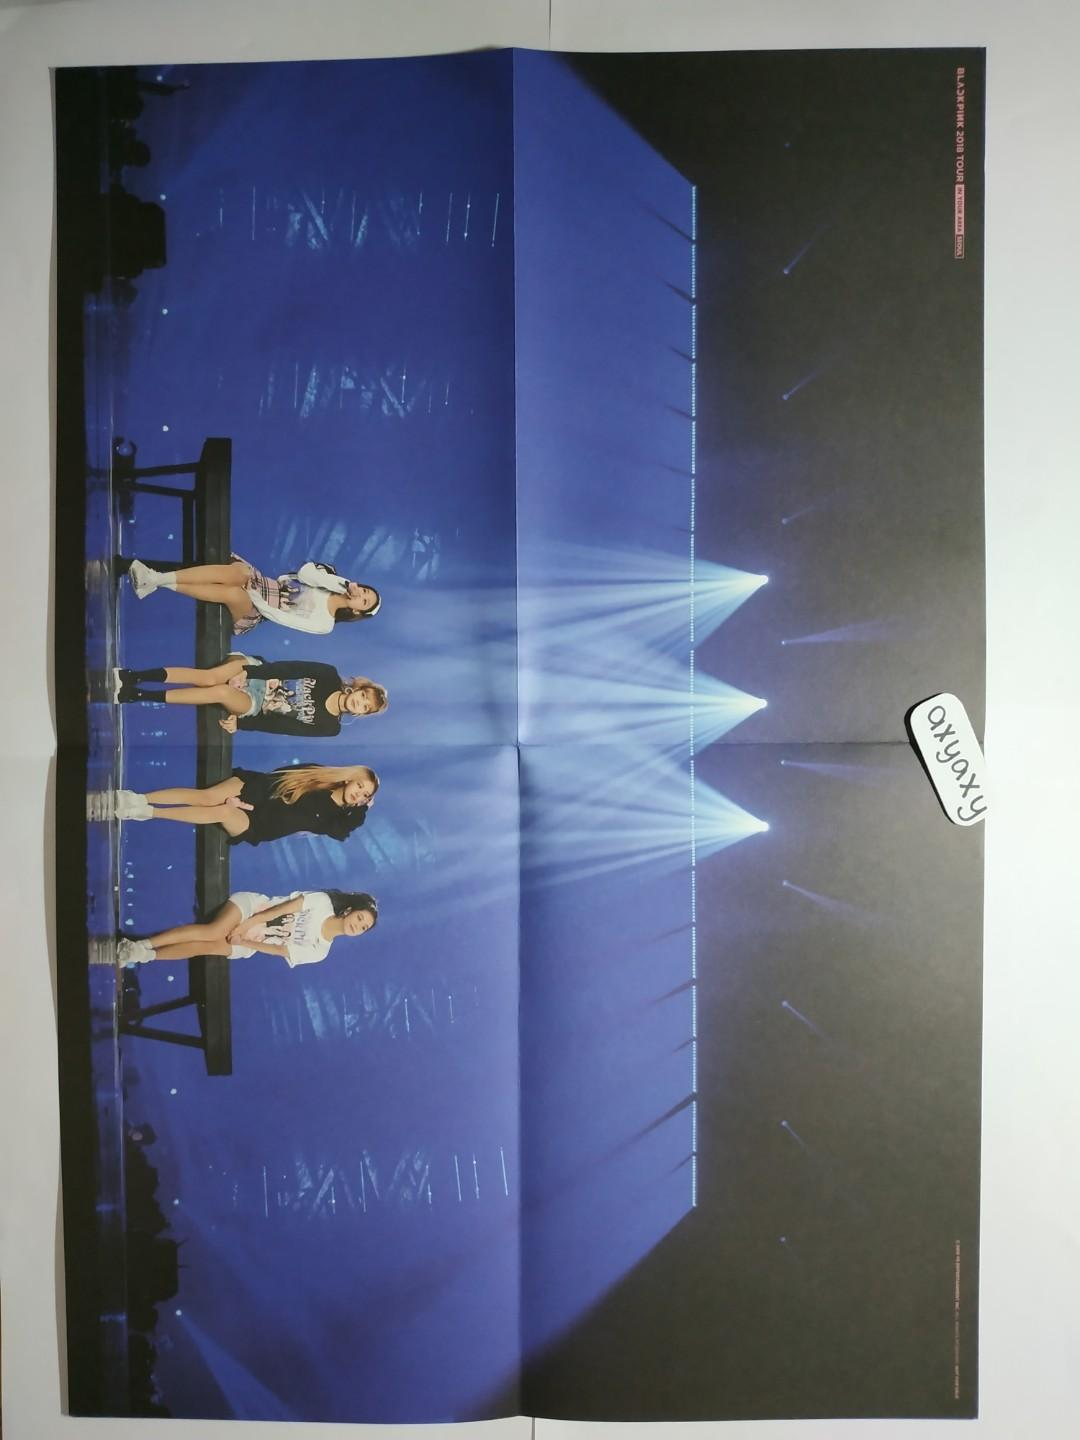 [WTS] BLACKPINK 2018 TOUR 'IN YOUR AREA' SEOUL DVD: Sticker Set + Poster + Post it note